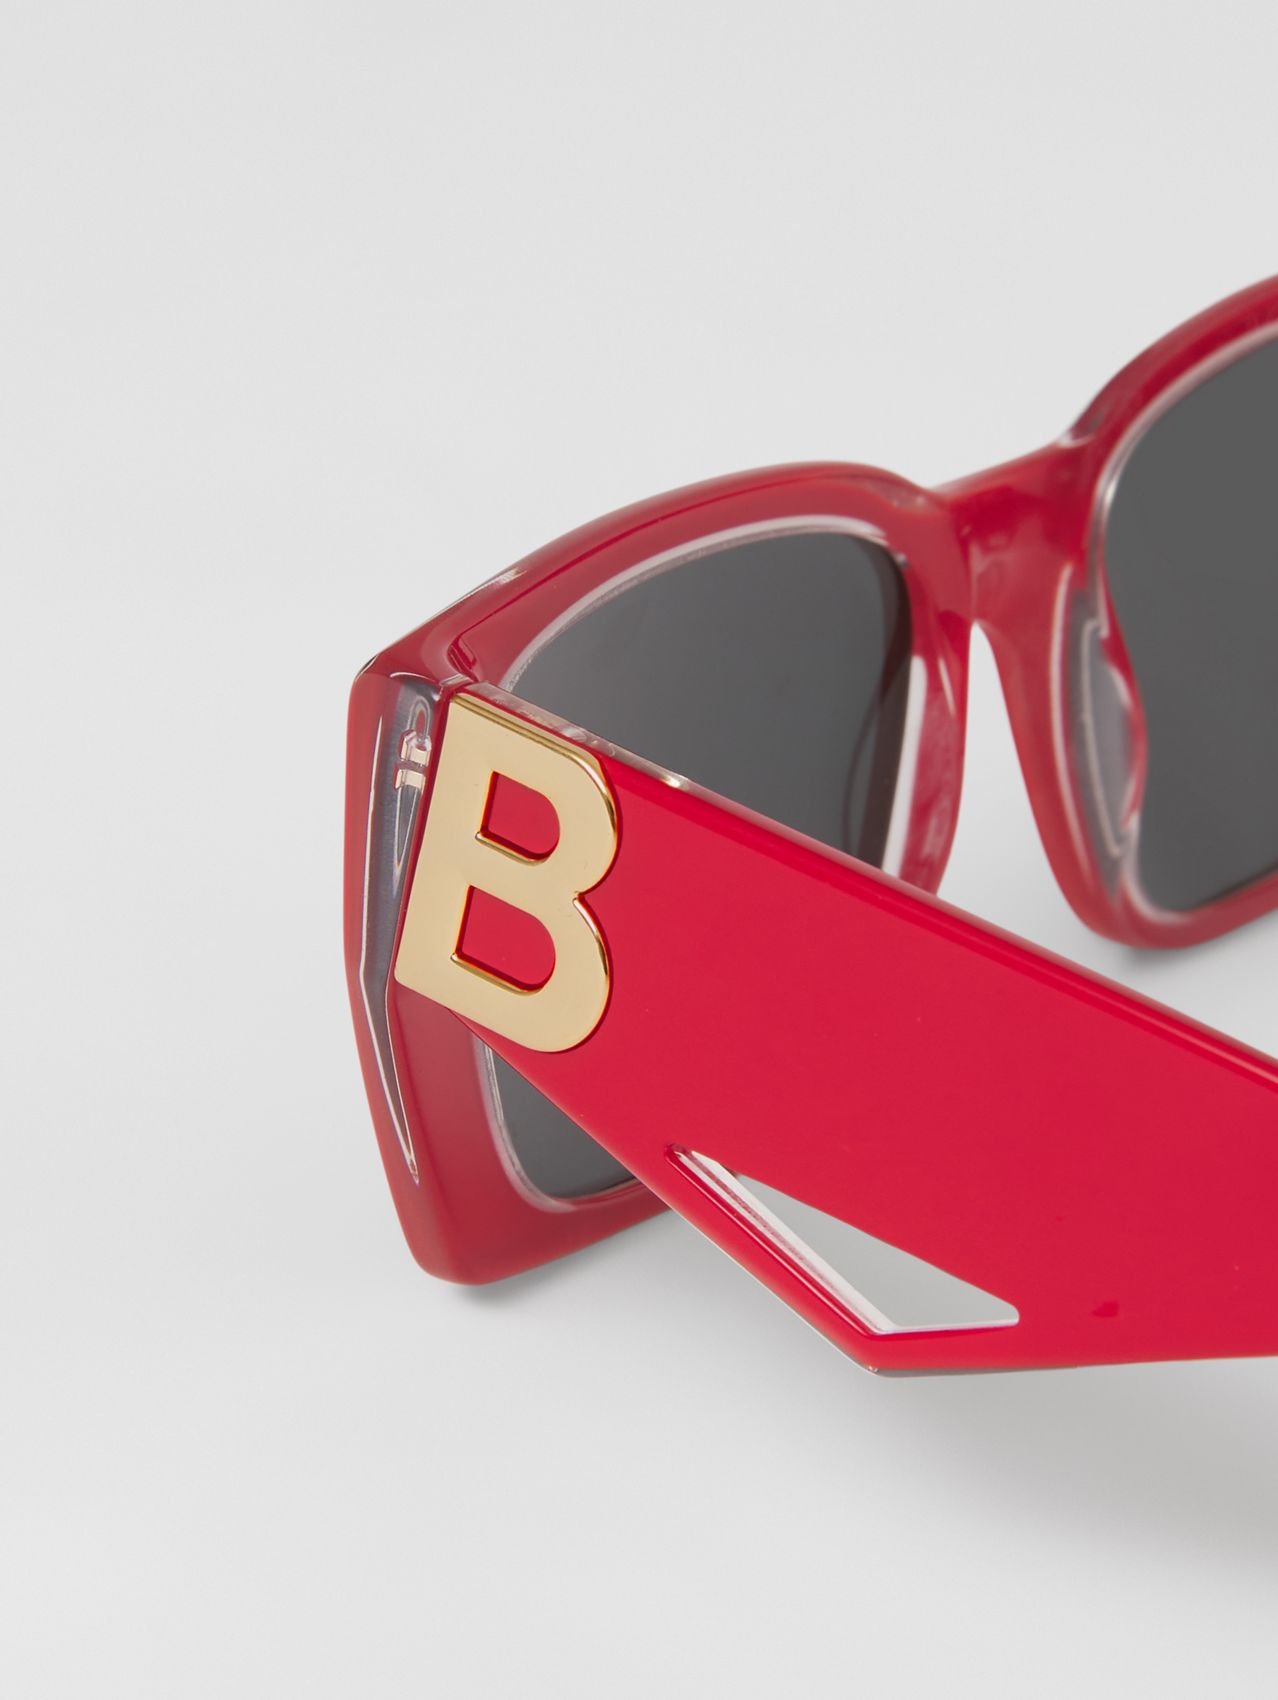 B Motif Bio-acetate Rectangular Frame Sunglasses in Red